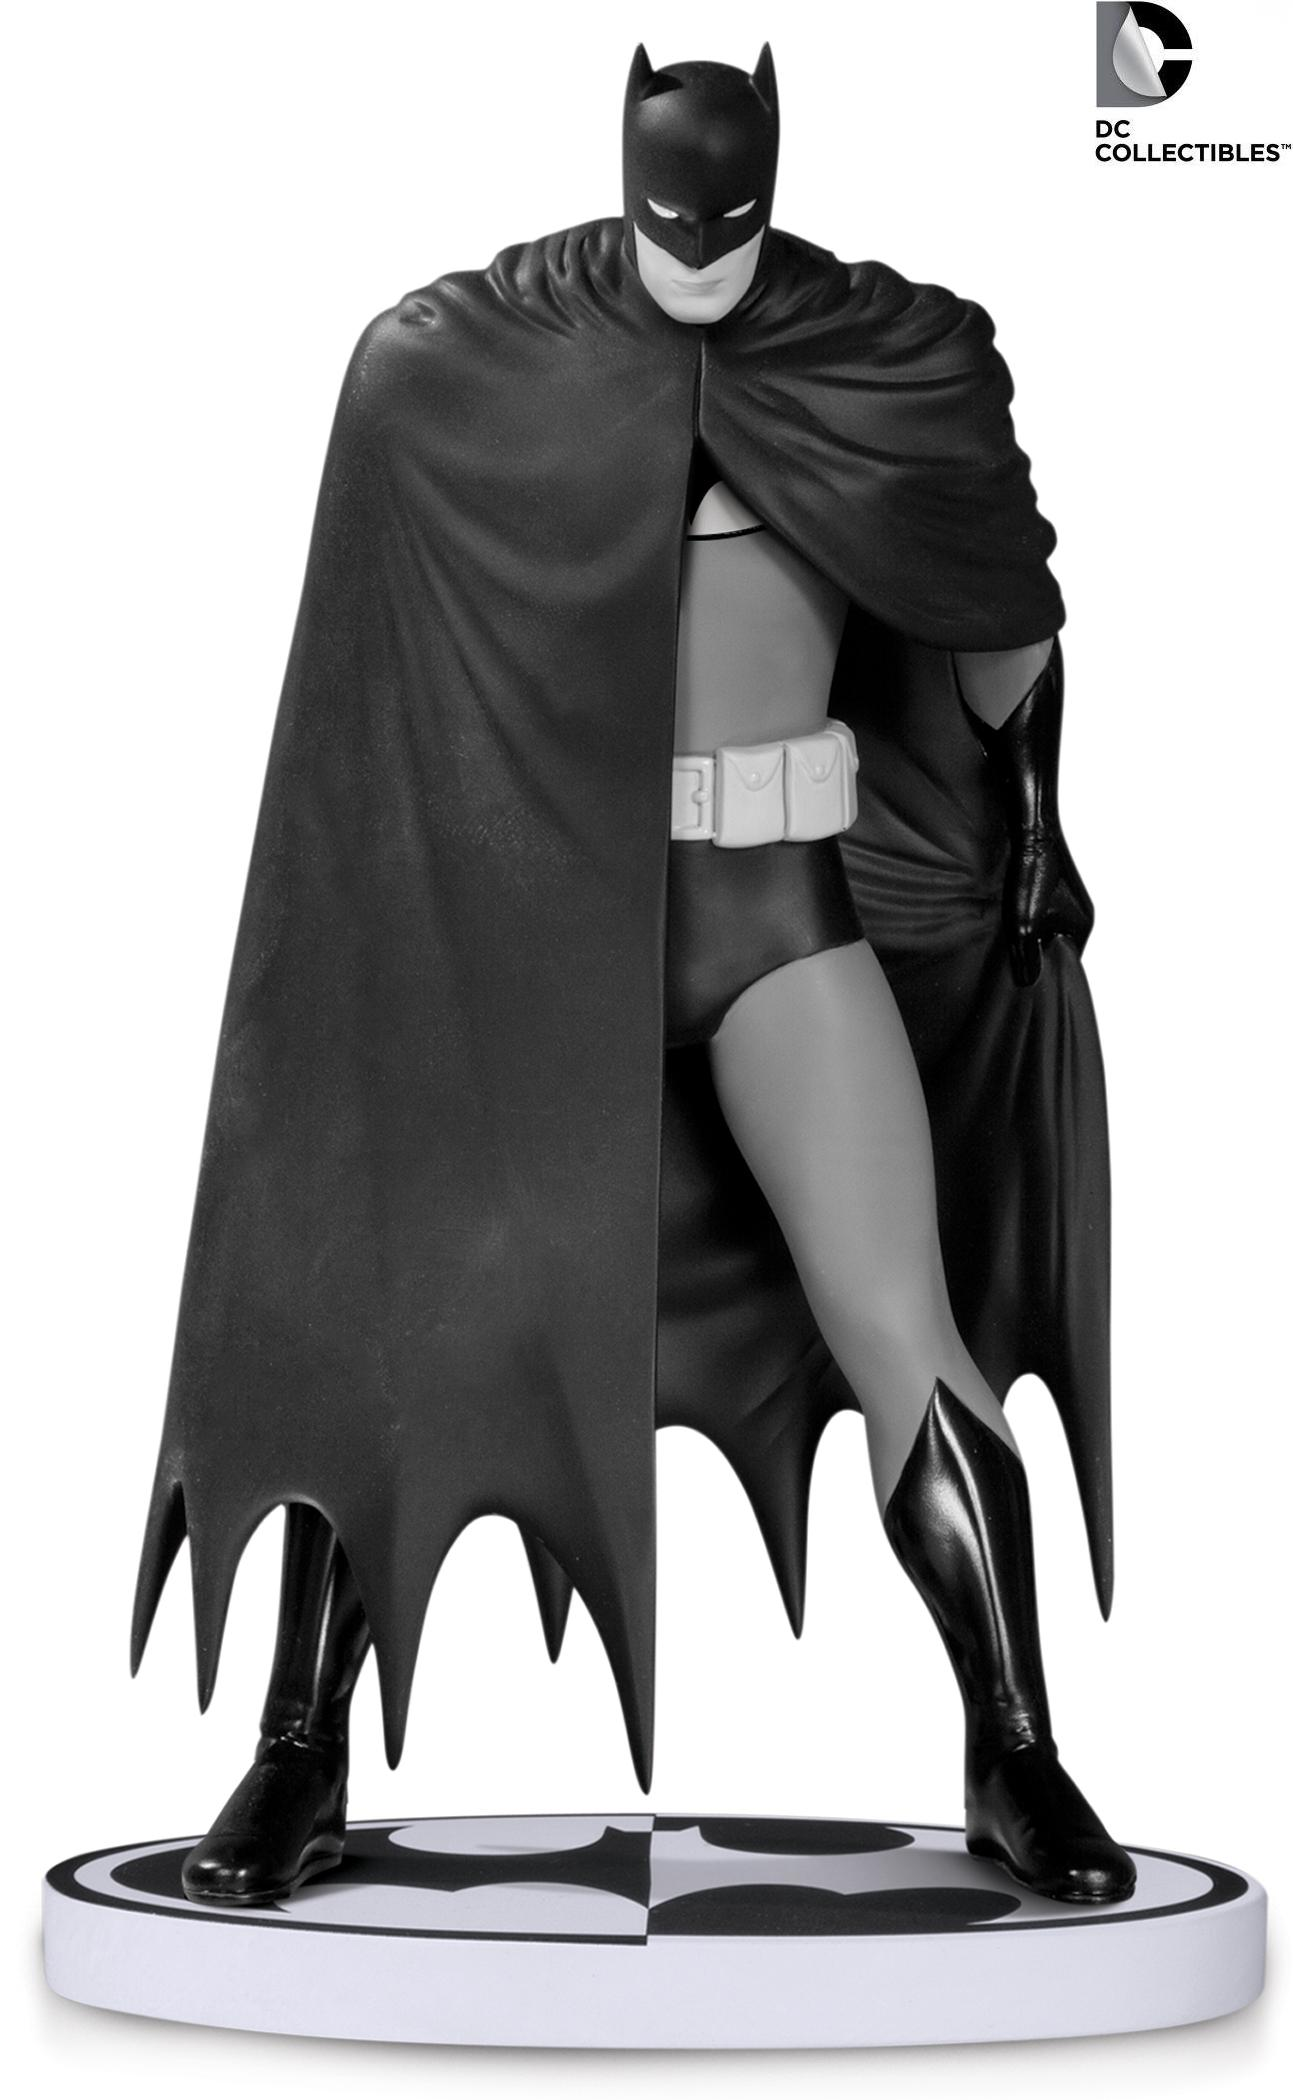 DC Comics Batman Black & White David Mazzucchelli V2 Statue